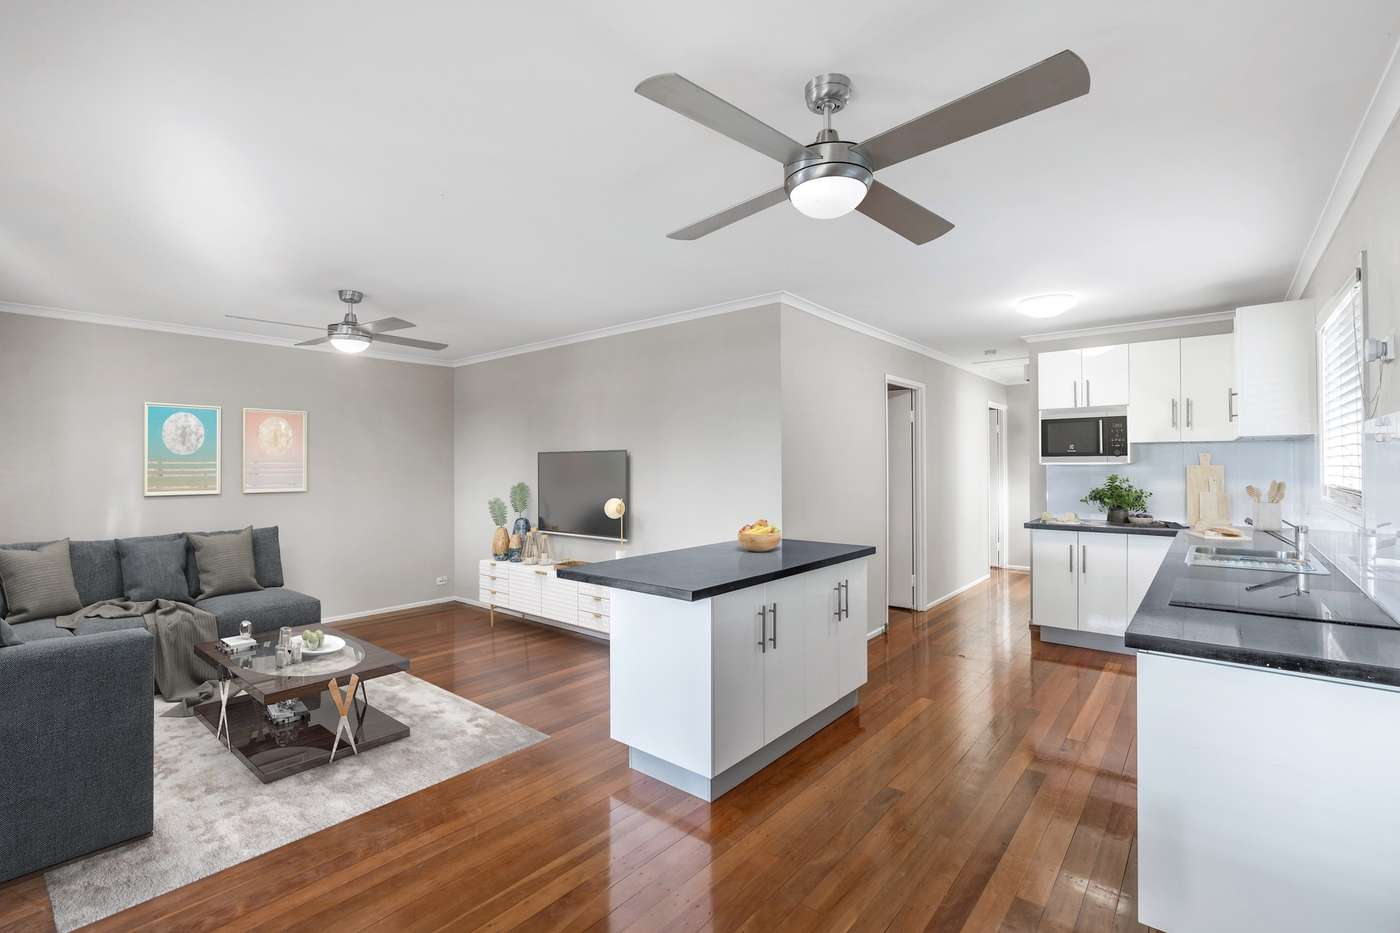 Main view of Homely house listing, 15 State Street, Hemmant, QLD 4174